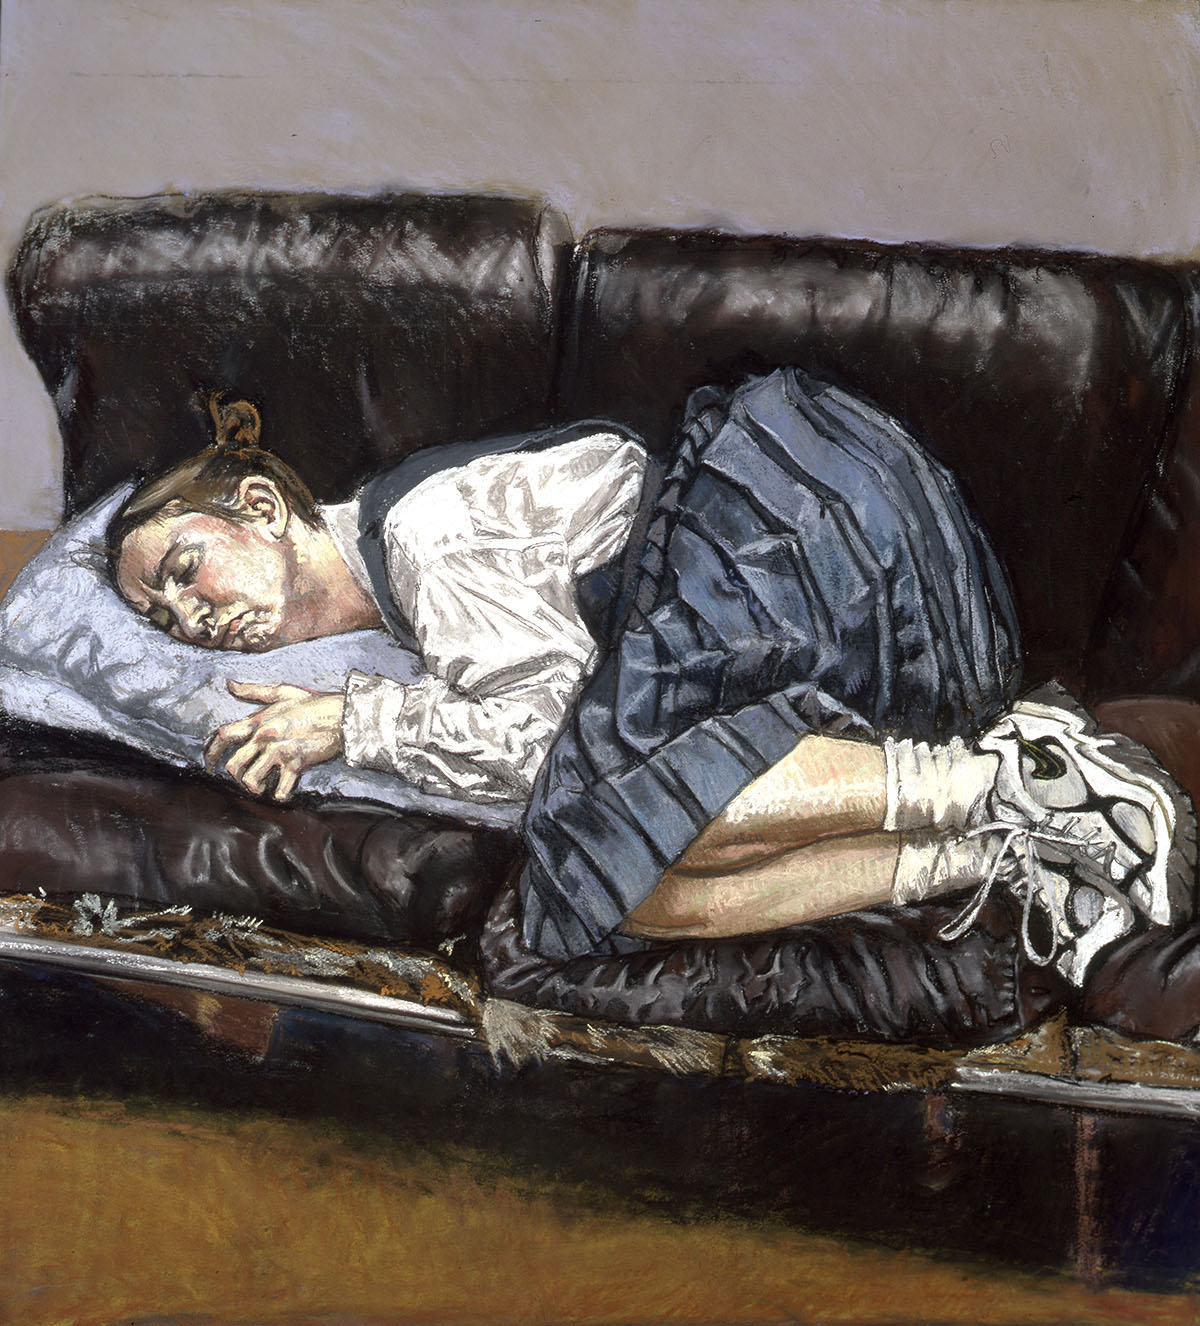 Paula Rego - Untitled No. 4, 1998